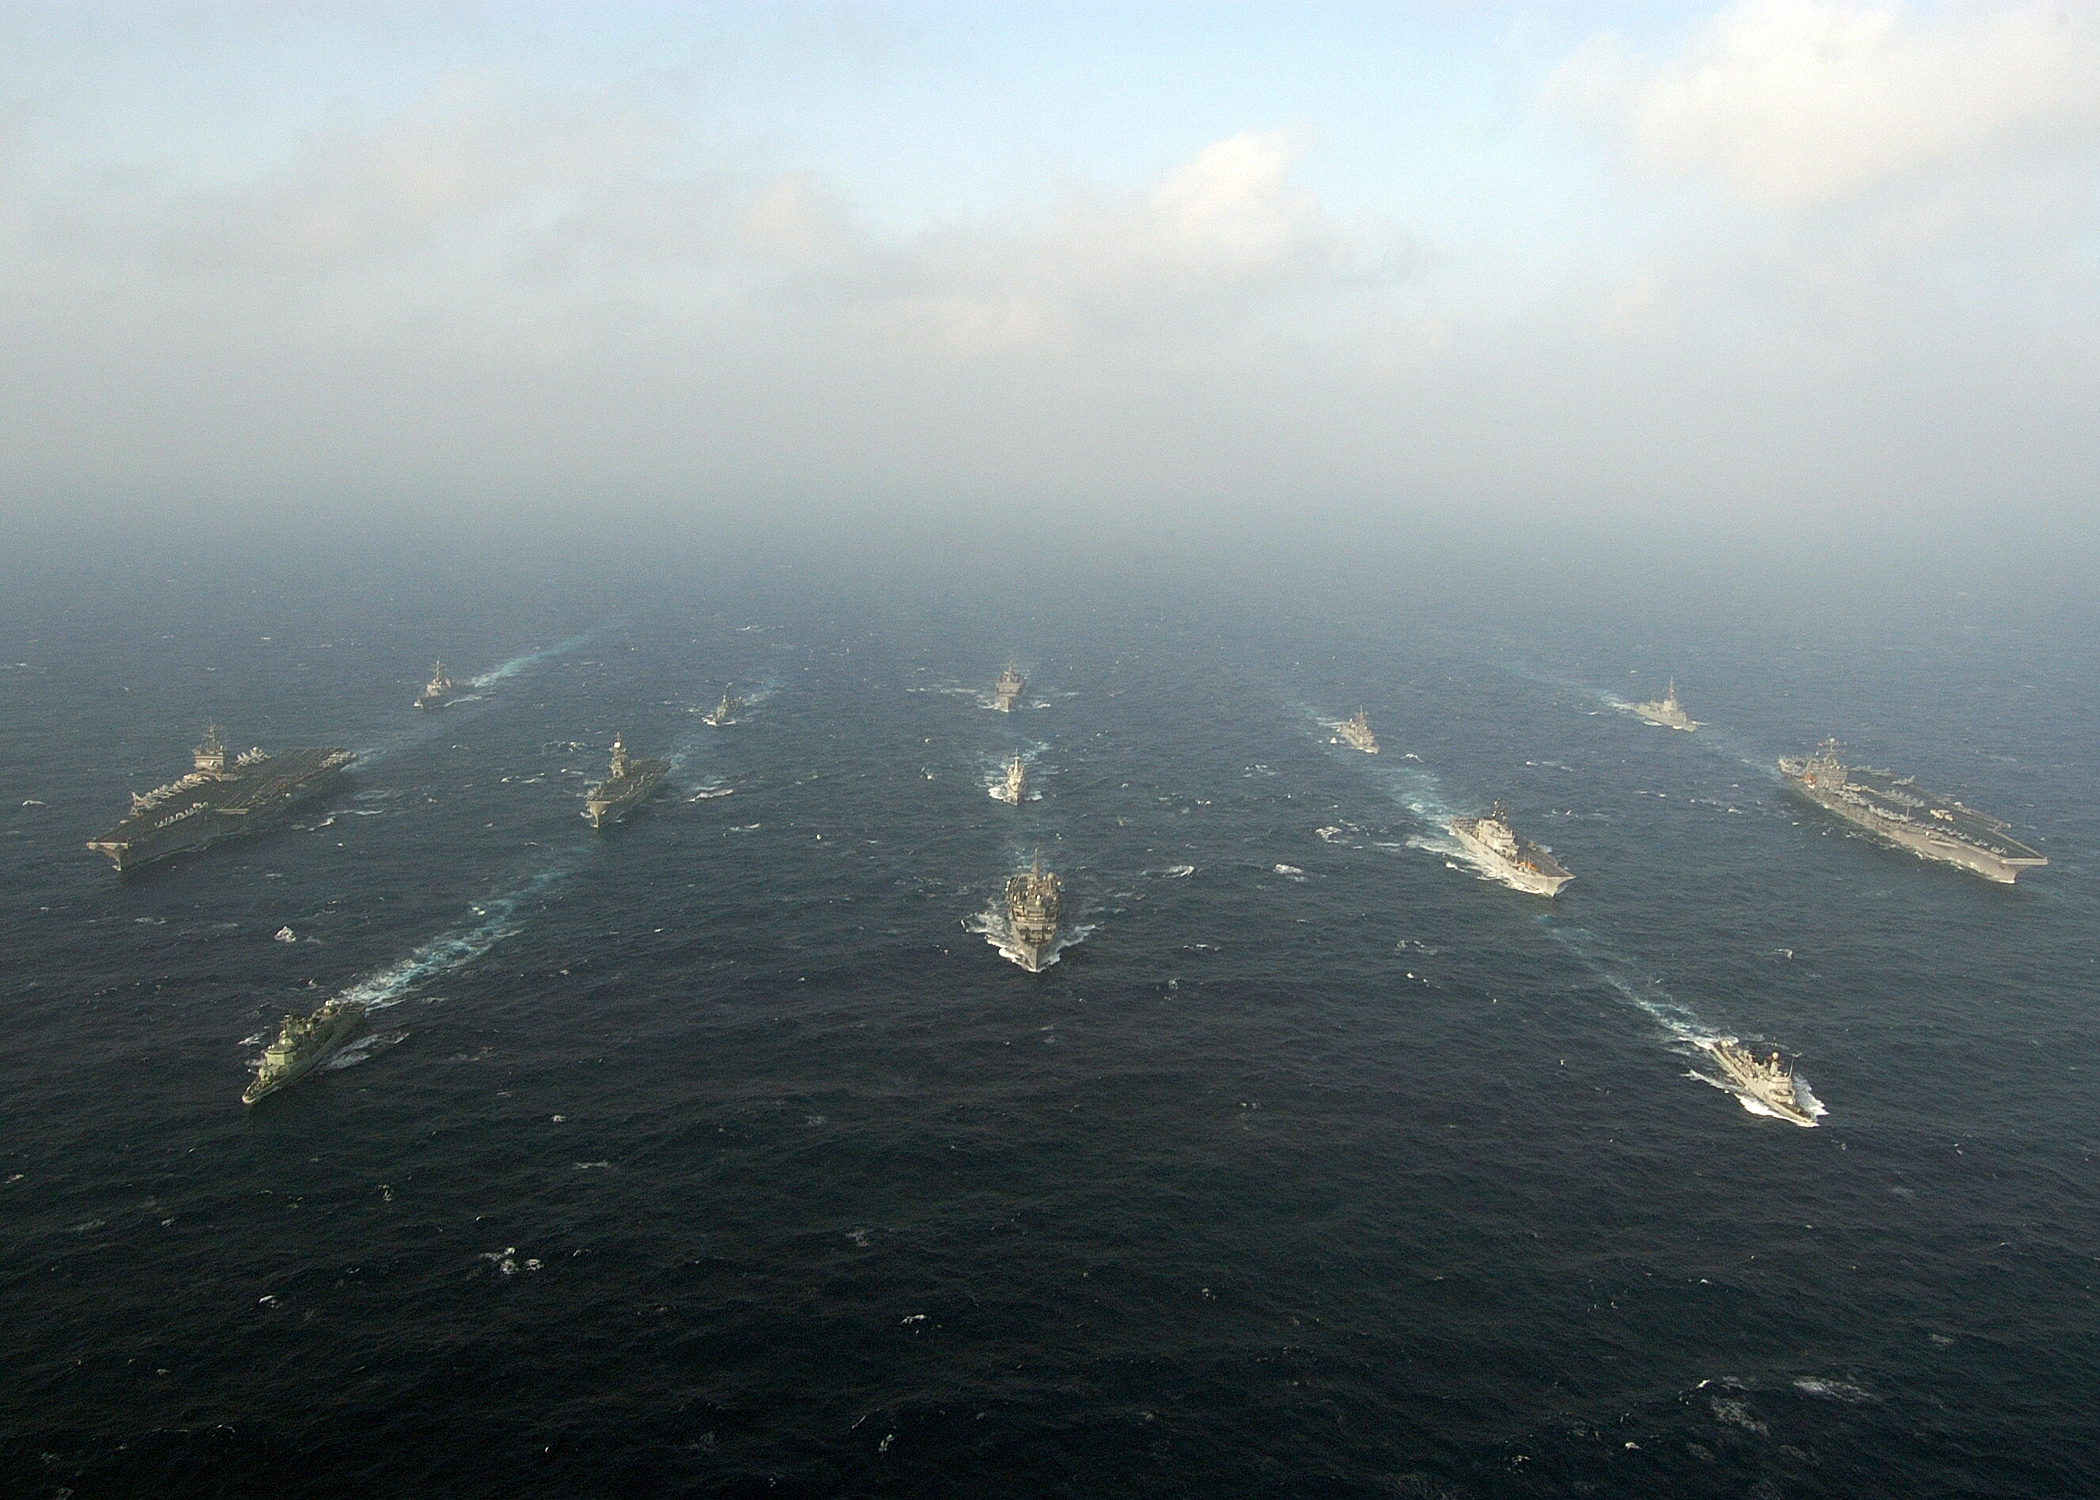 http://upload.wikimedia.org/wikipedia/commons/3/30/US_Navy_040712-N-5405H-101_USS_Enterprise_(CVN_65),_left,_and_USS_Harry_S._Truman_(CVN_75),_right,_steam_through_the_waters_of_the_Atlantic_Ocean_in_formation_with_other_US_Navy_ships_and_multi-national_warships_as_part_of_Maje.jpg